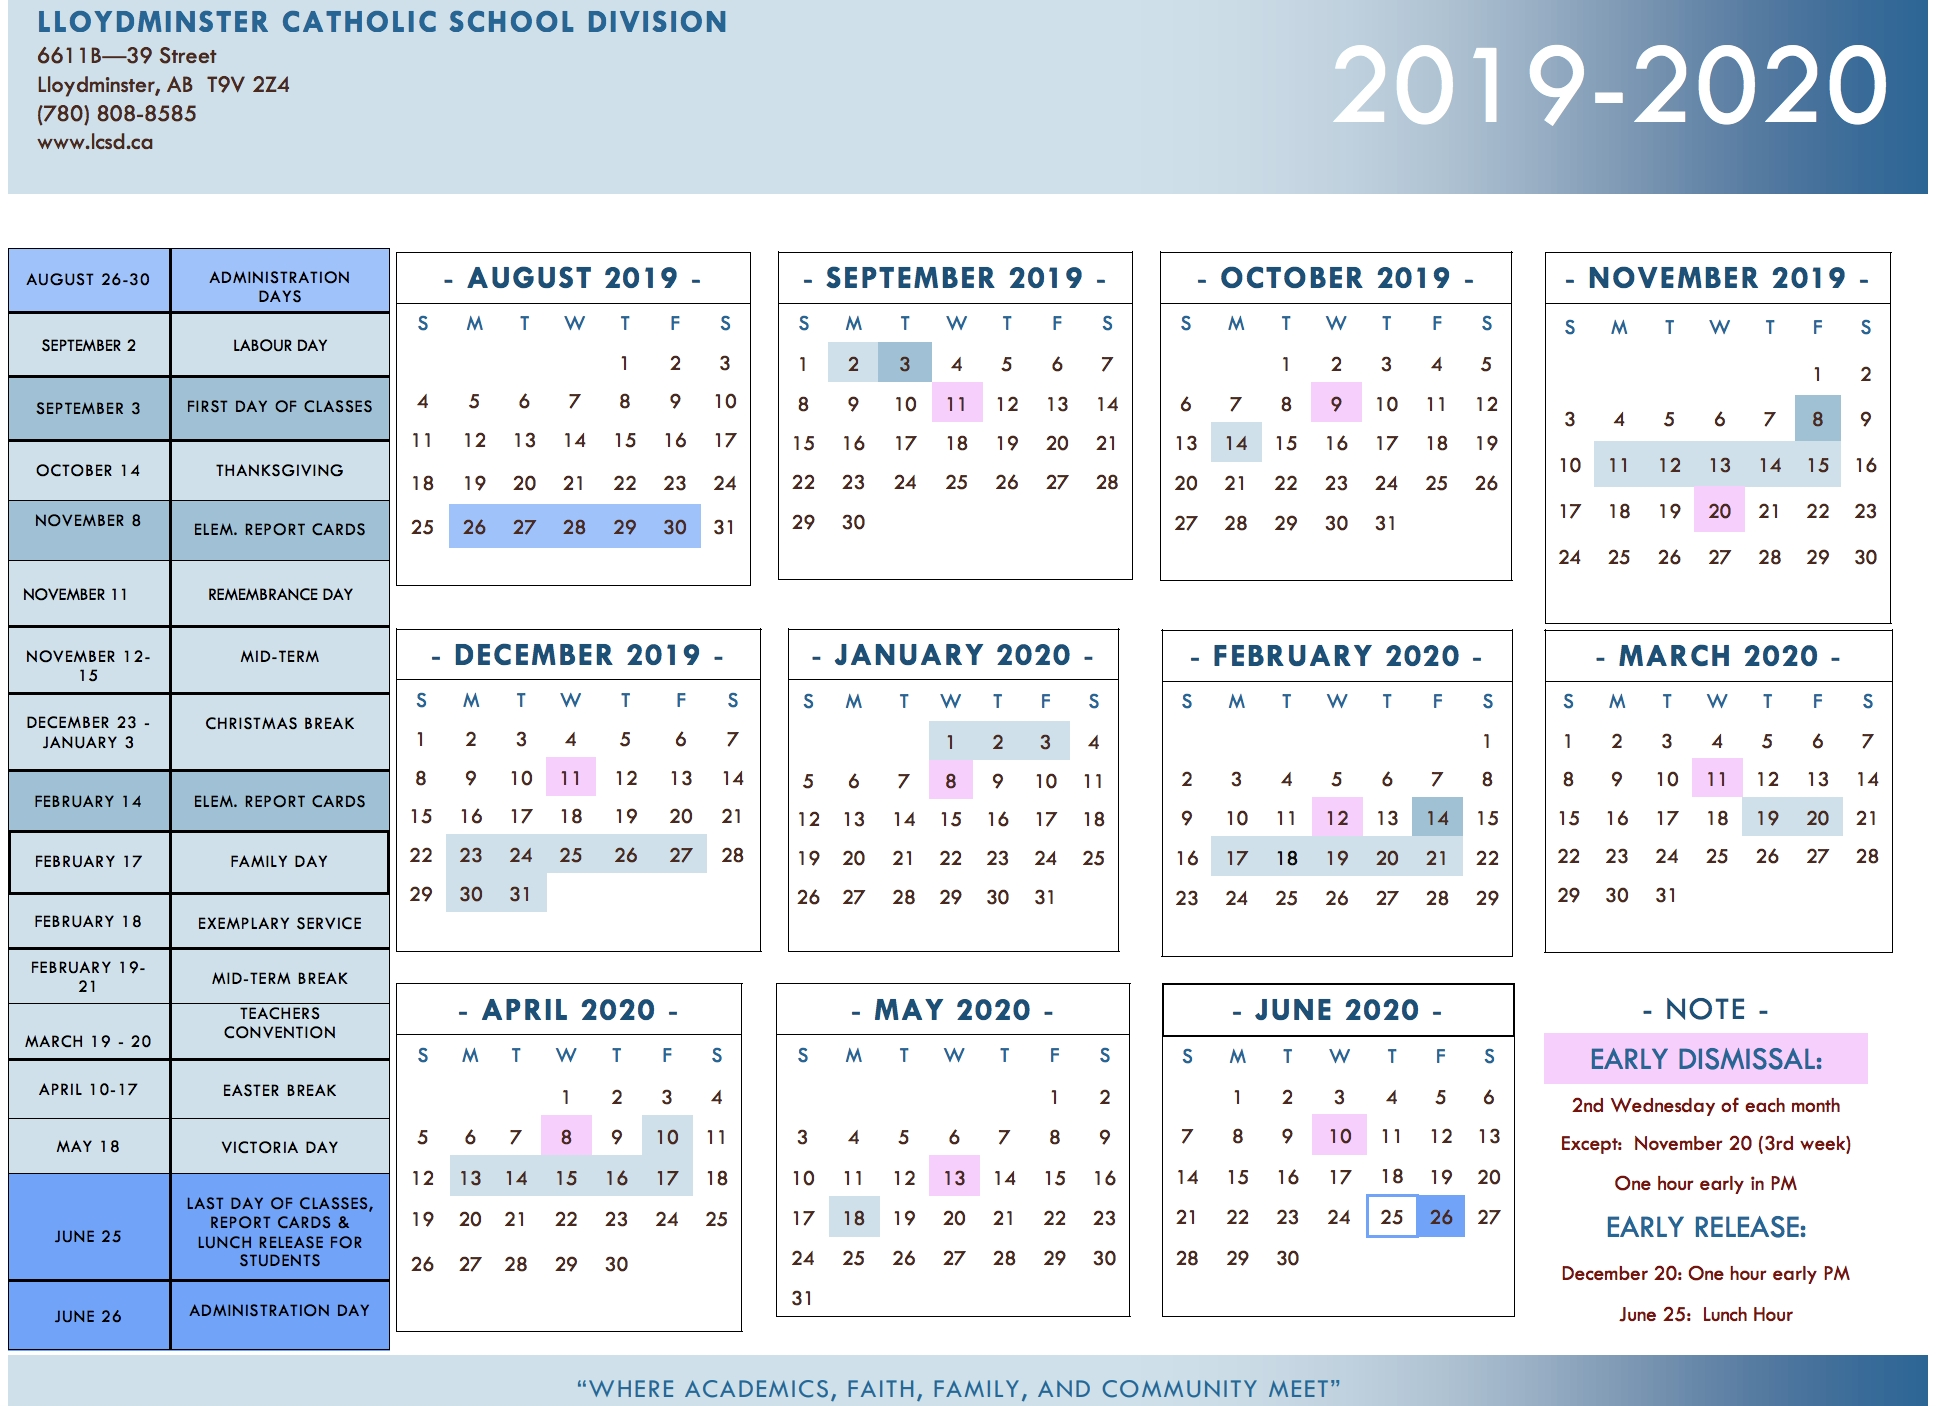 Division Calendar - Lloydminster Catholic School Division intended for 2020 Liturgical Calendar June 2020